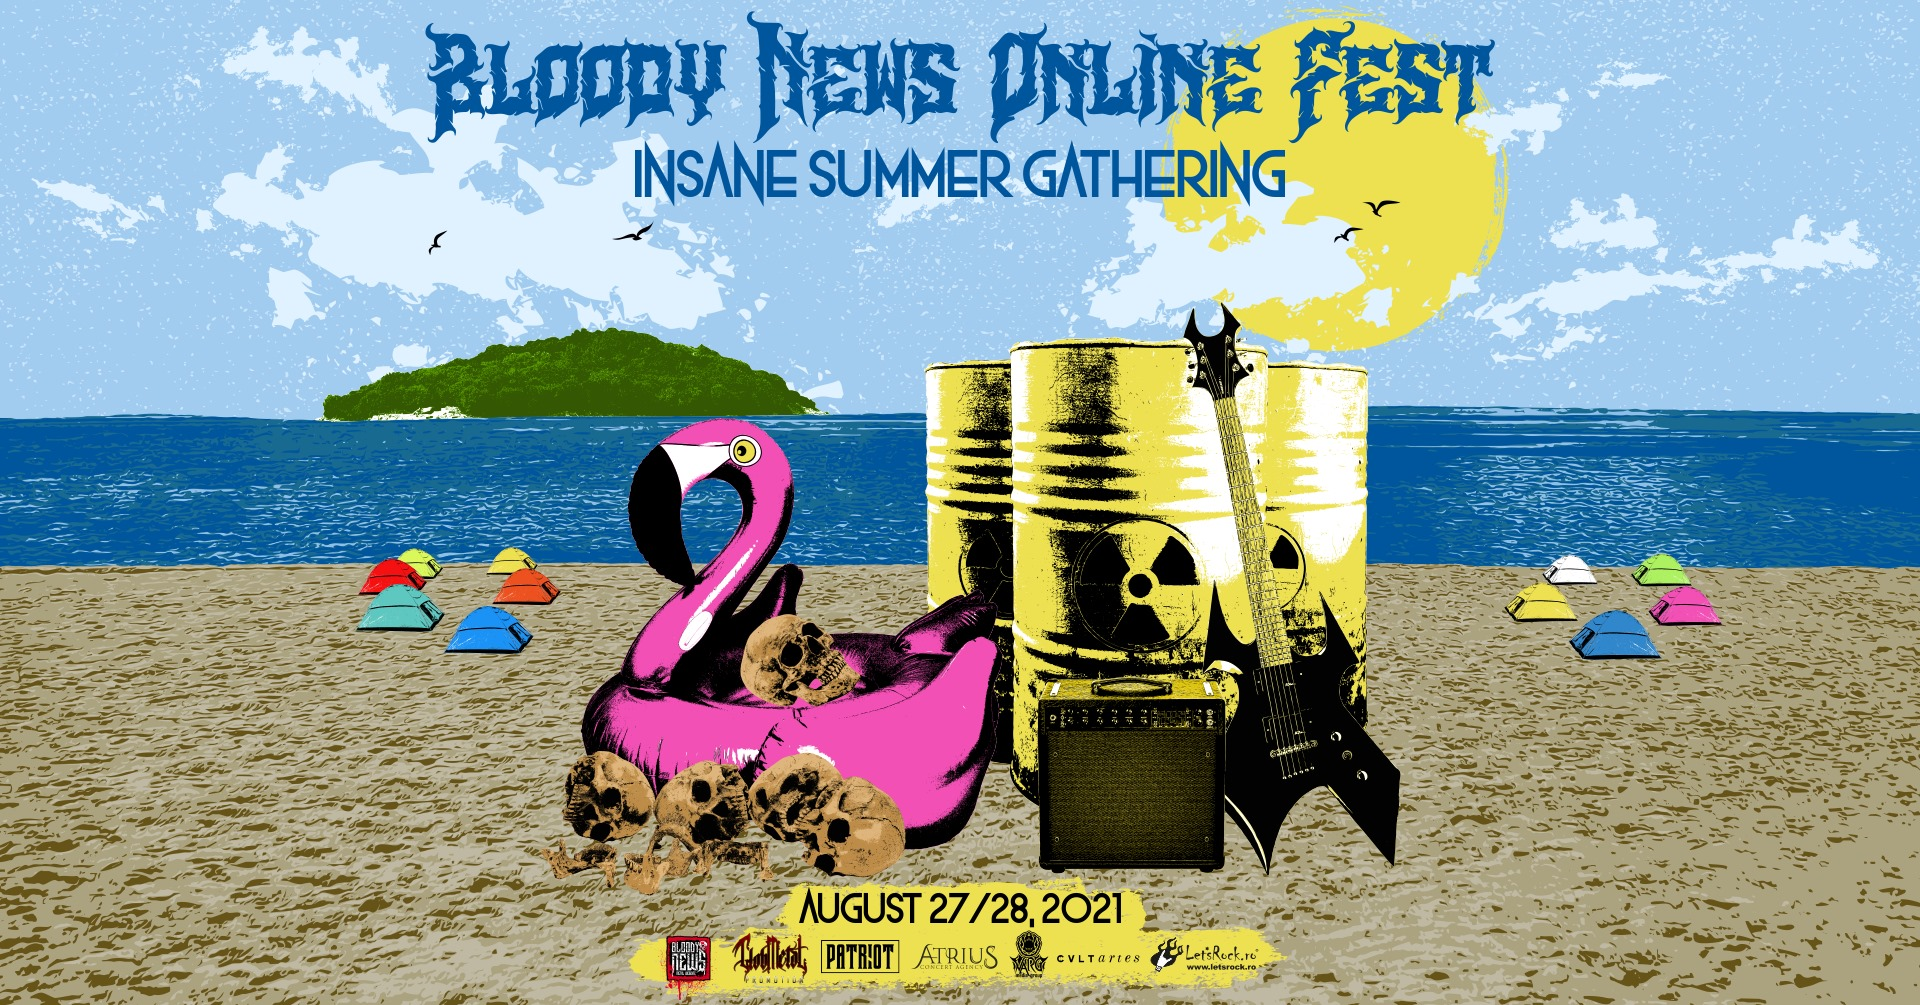 Psycho Visions - Bloody News Online Fest